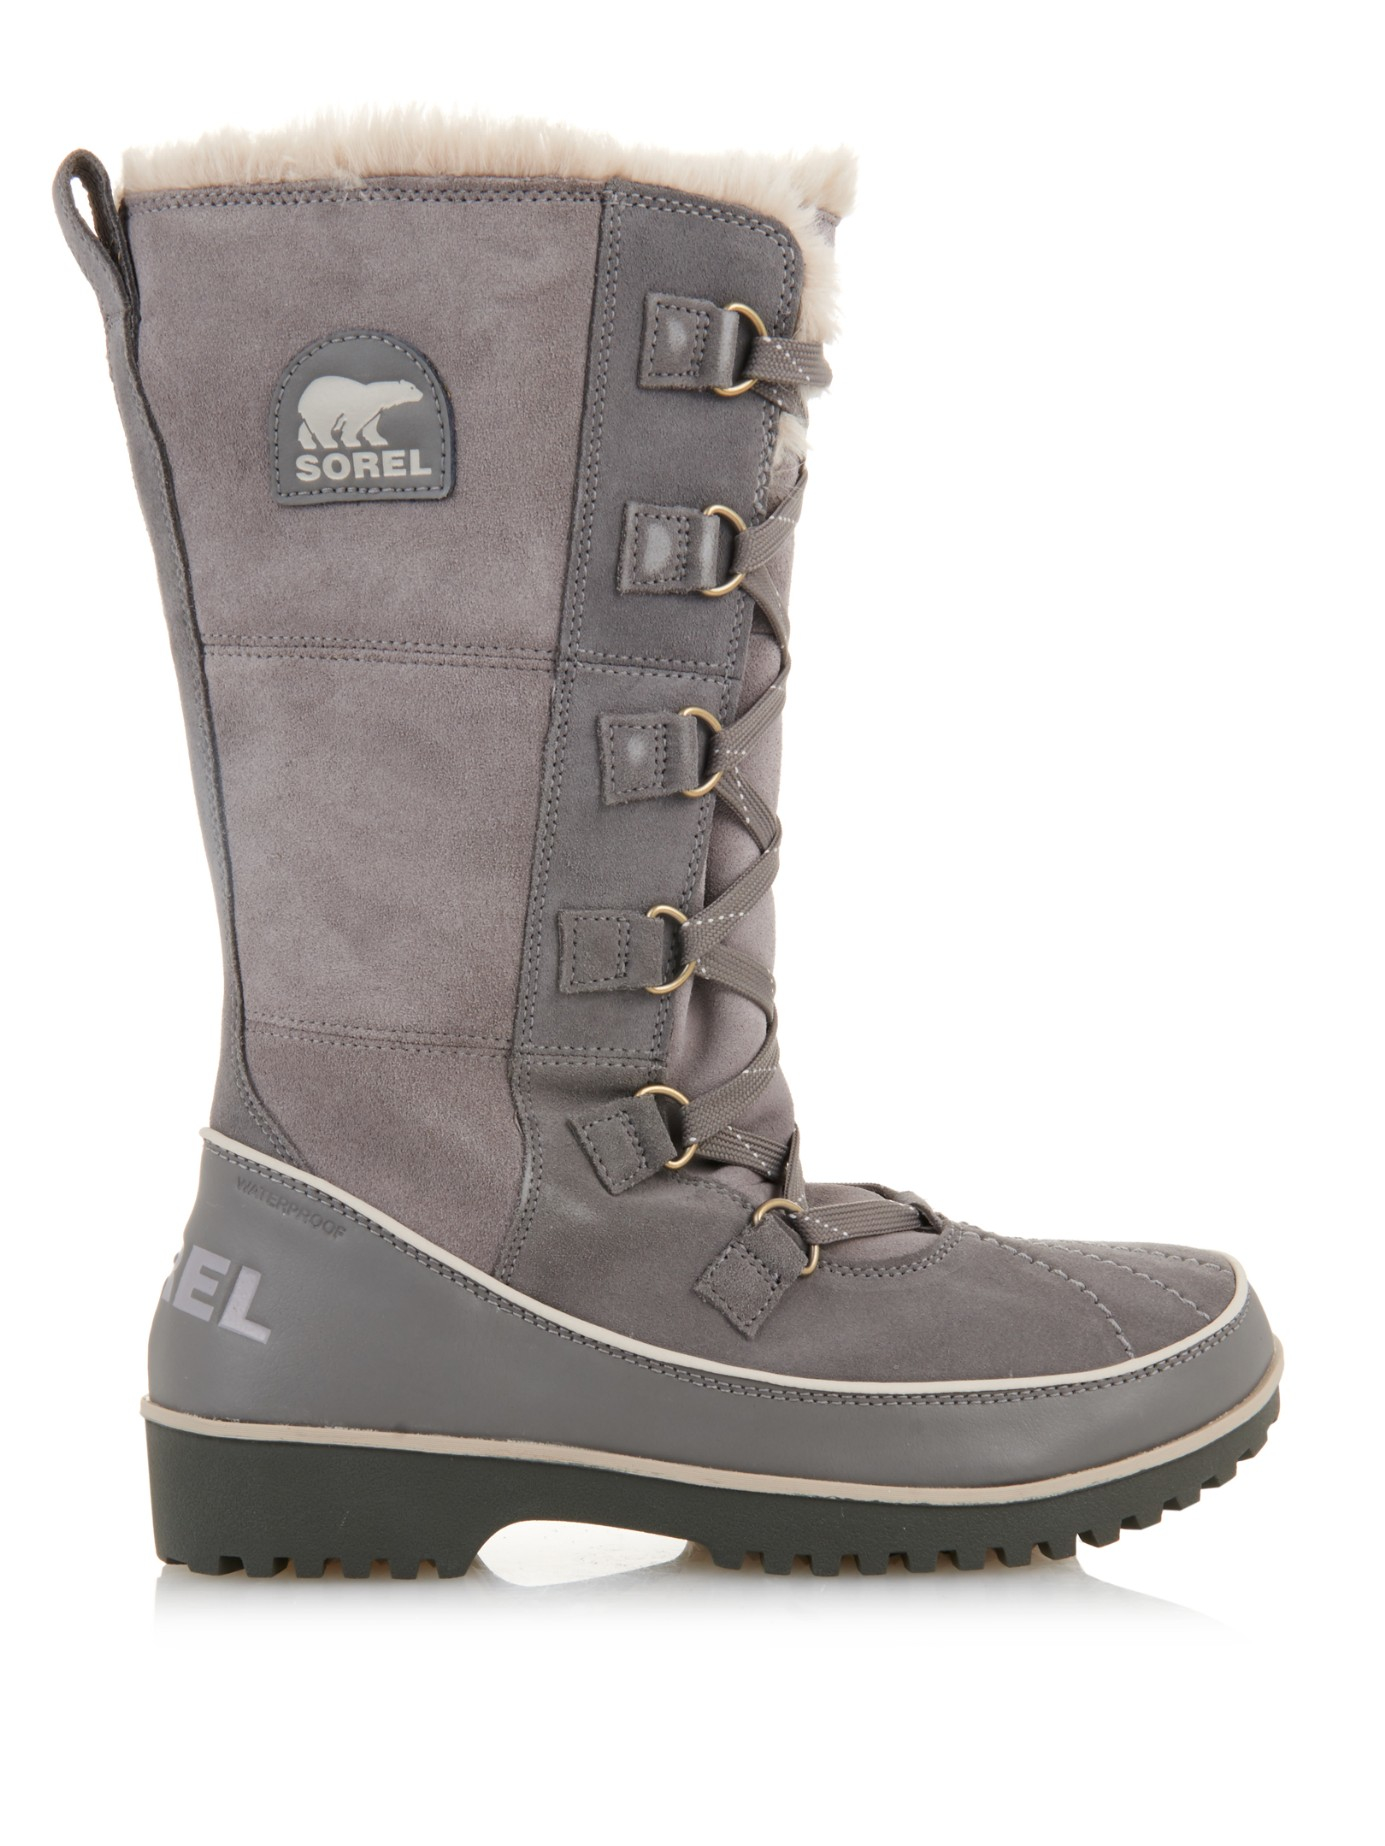 Sorel Tivoli Ii Suede Snow Boots In Gray Lyst